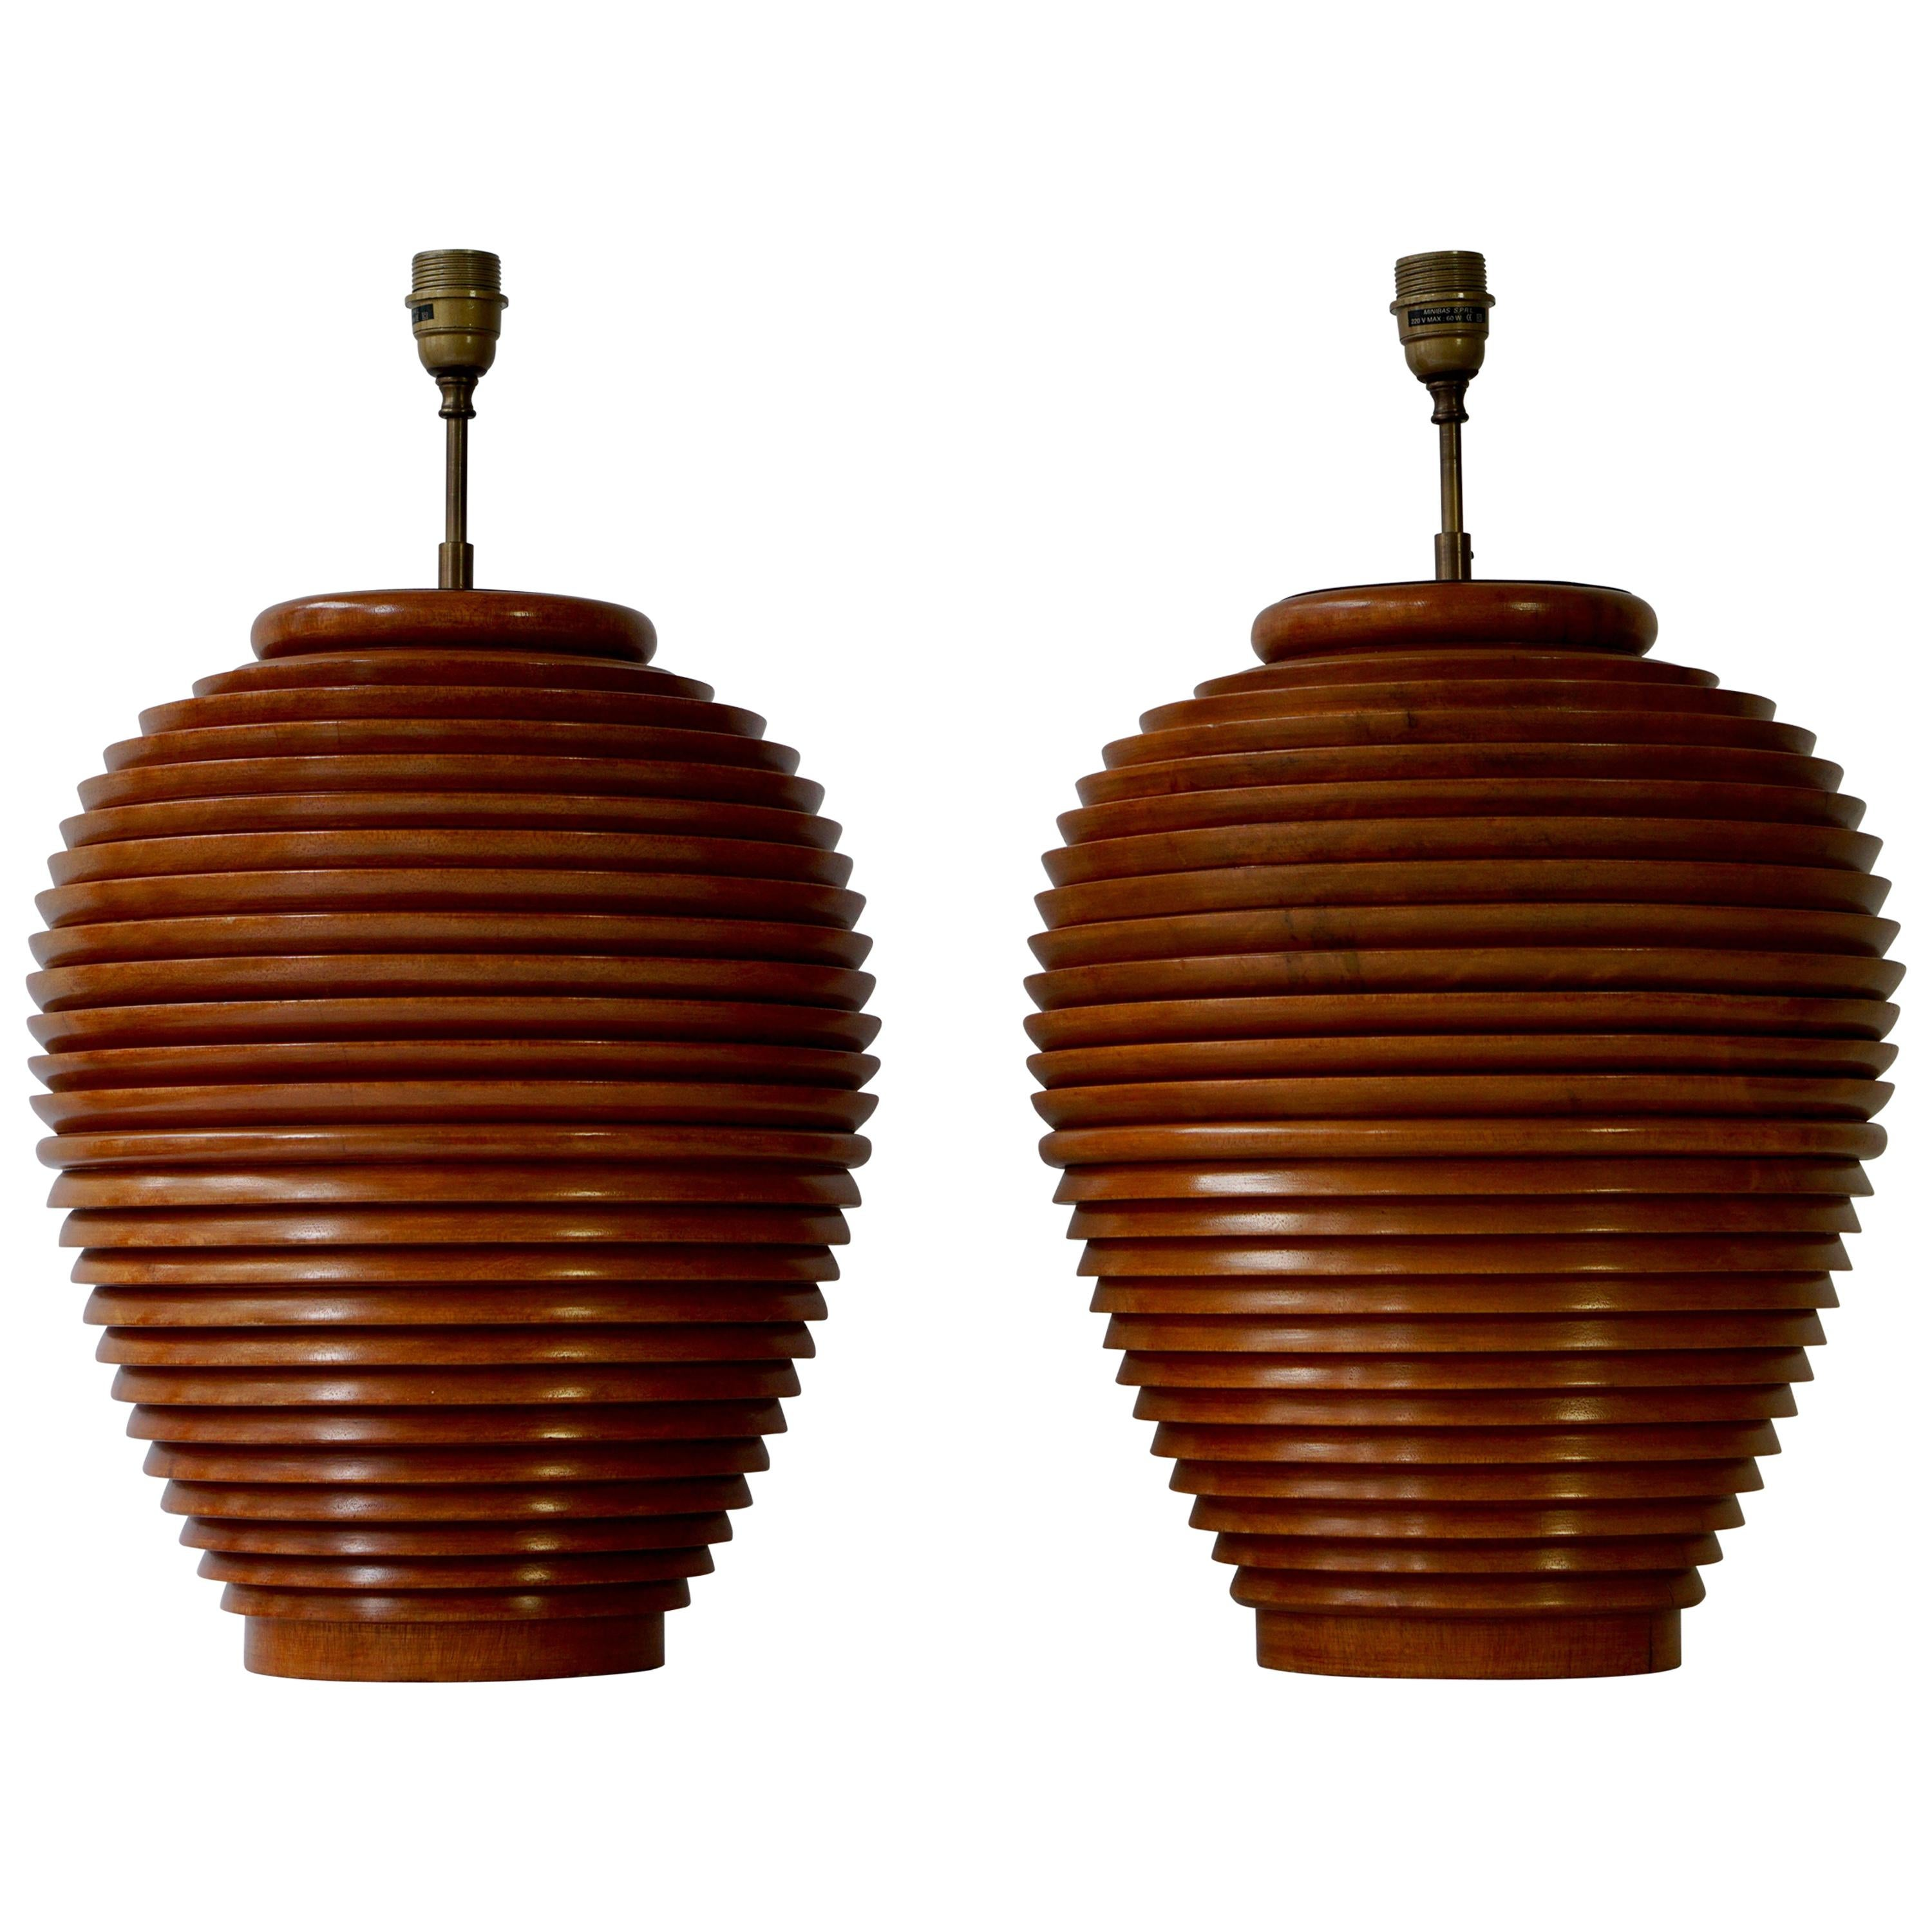 Two Large Wooden Table Or Floor Lamps, Birma